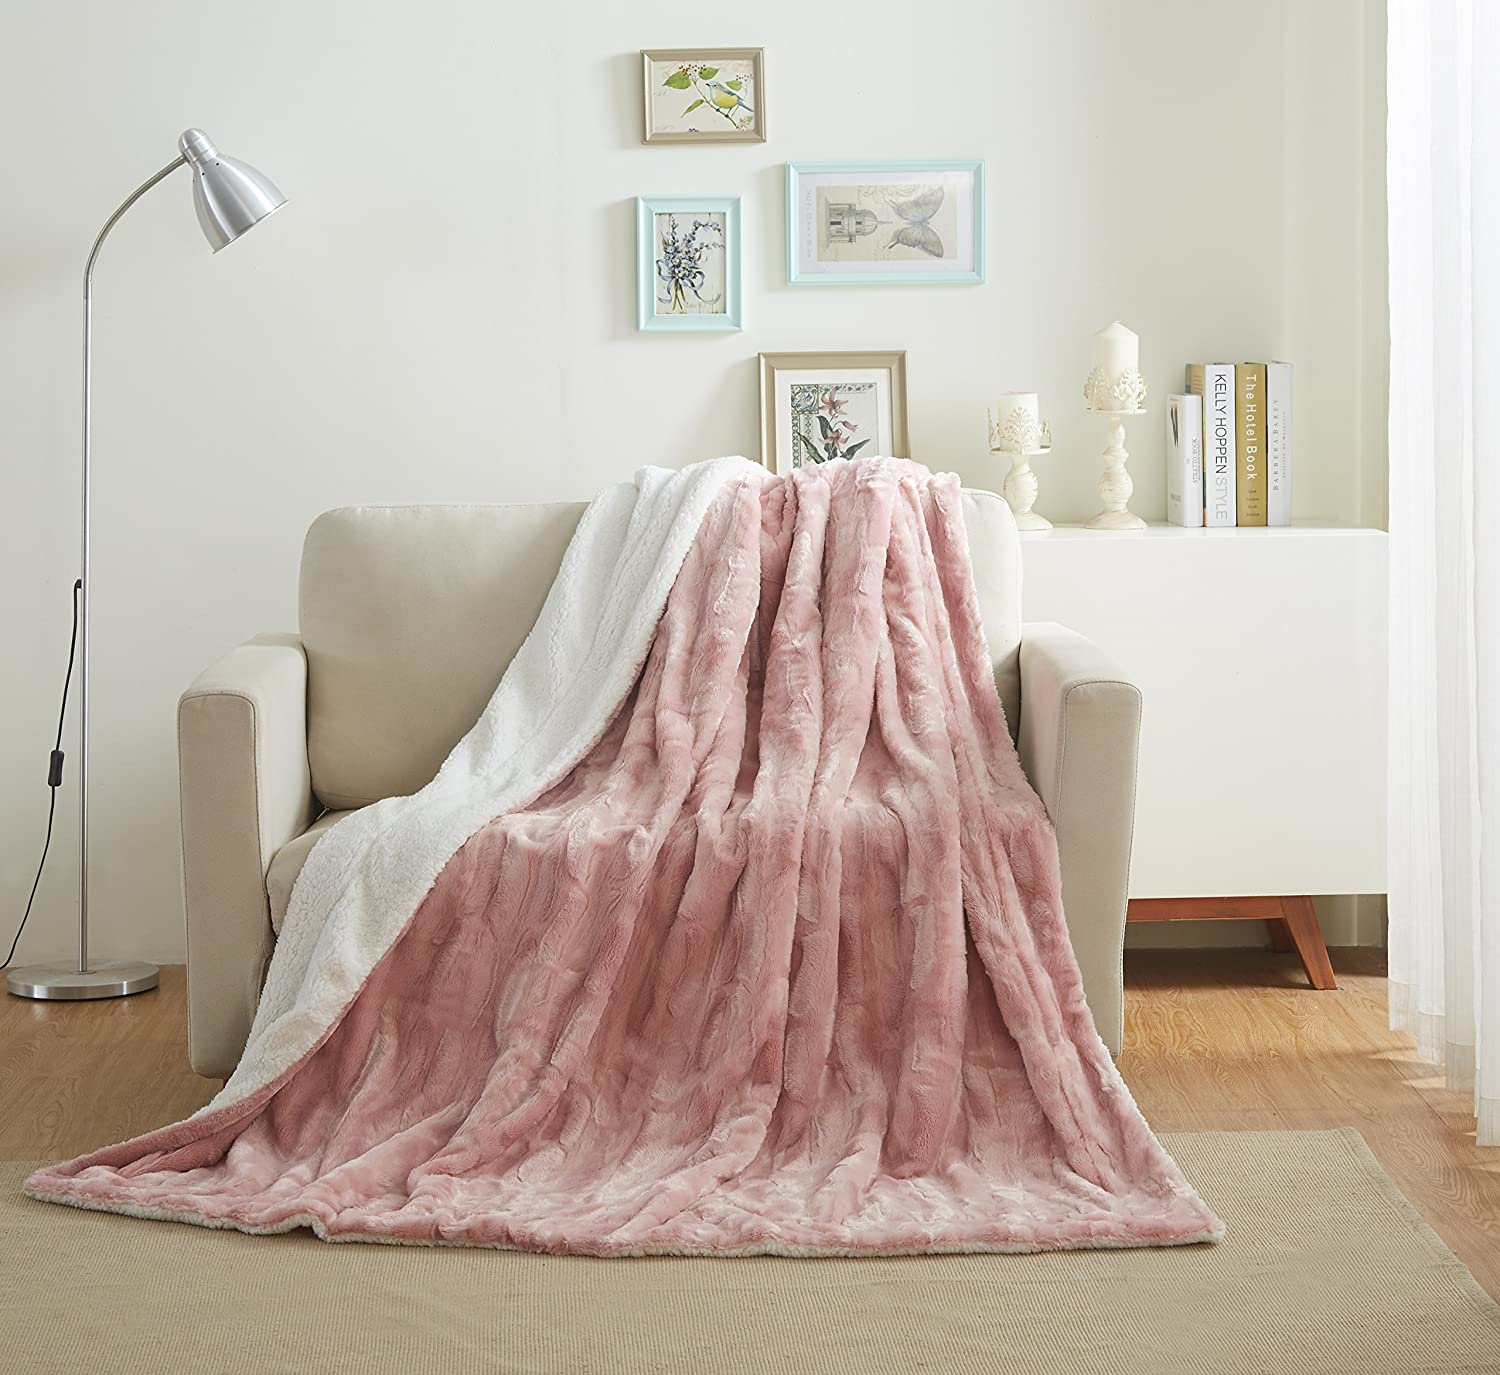 Tache 90x90 Faux Fur Dusty pink Pink Soft Throw Blanket